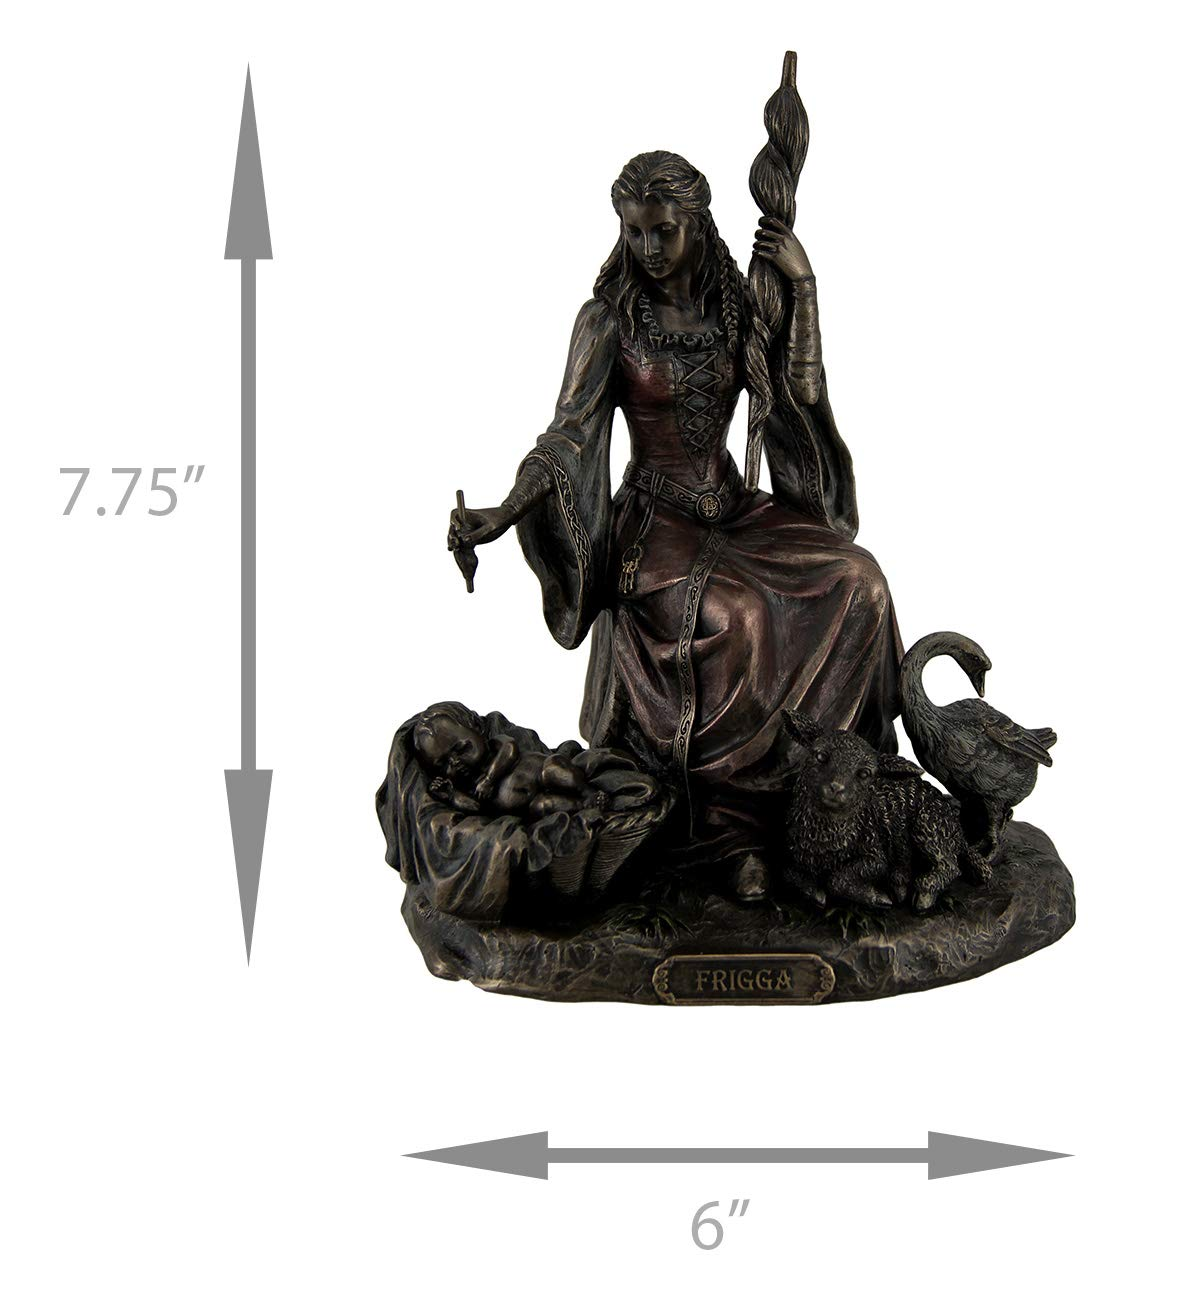 Resin Statues Frigga Norse Goddess Of Destiny Love And Marriage W//Infant Animals /& Spindle 6 X 7.75 X 4.5 Inches Bronze Unicorn Studios